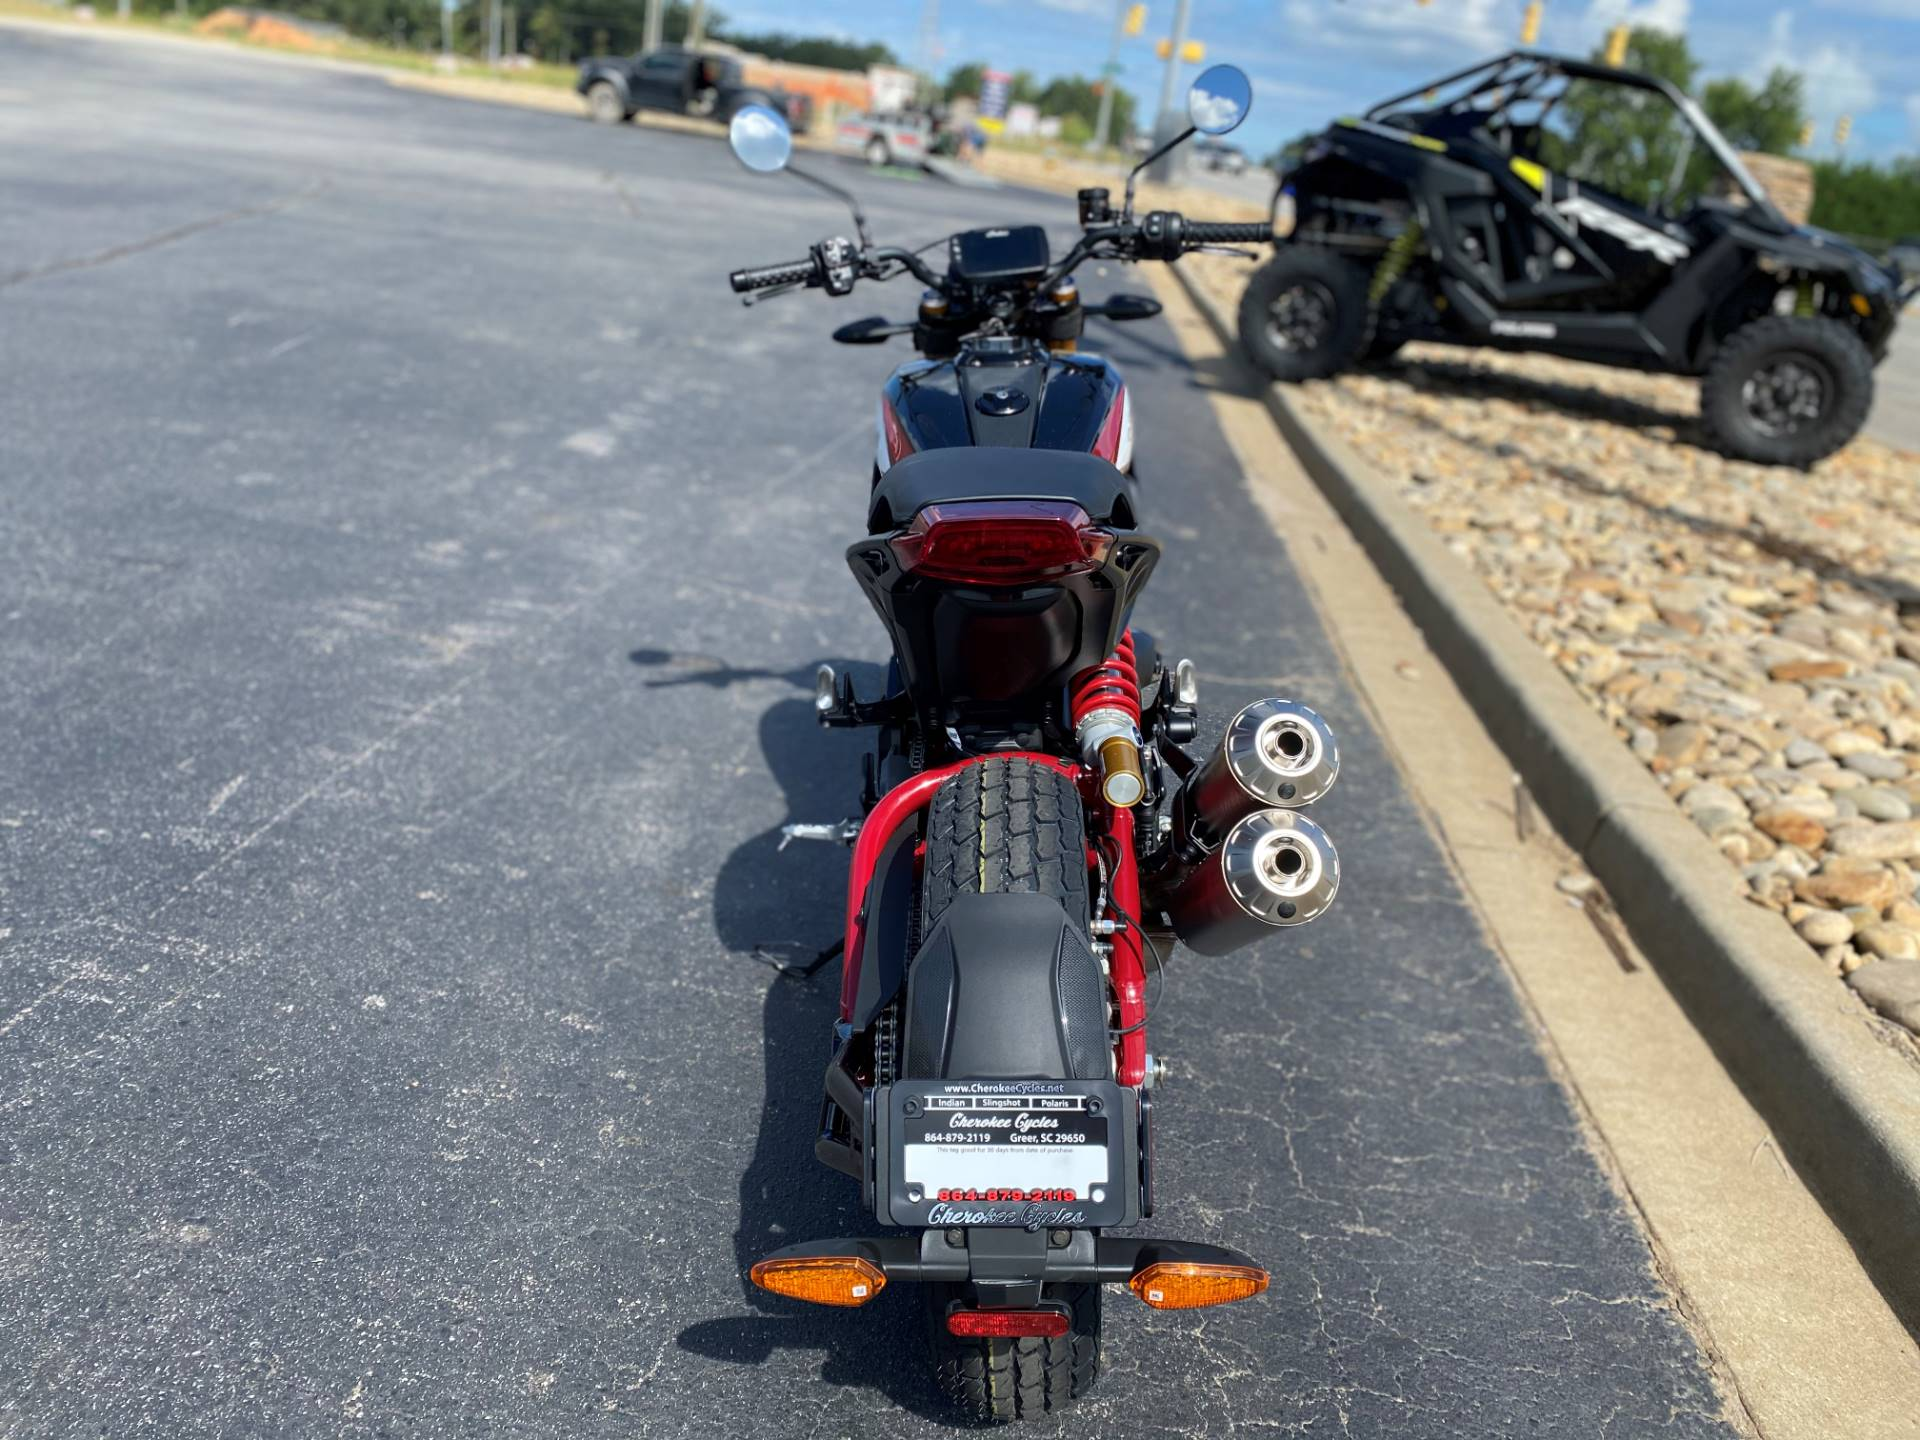 2019 Indian FTR™ 1200 S in Greer, South Carolina - Photo 8